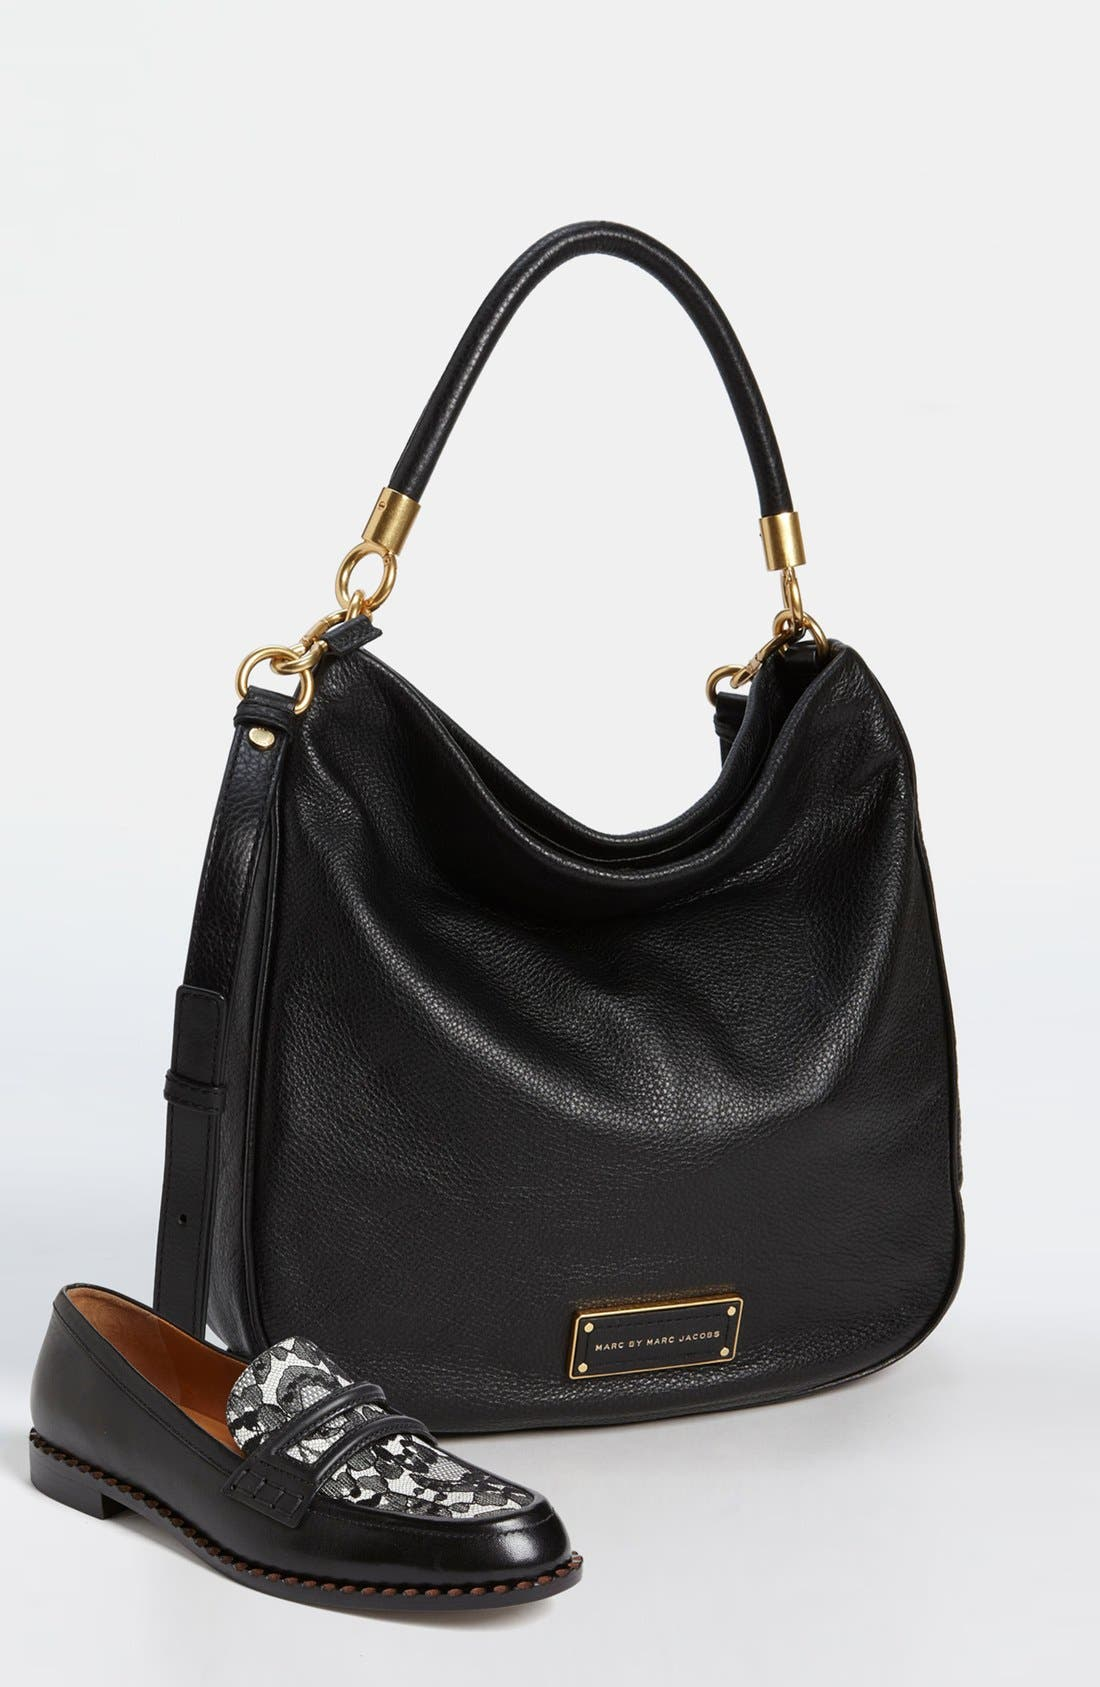 MARC BY MARC JACOBS 'Too Hot to Handle' Hobo,                             Alternate thumbnail 6, color,                             001